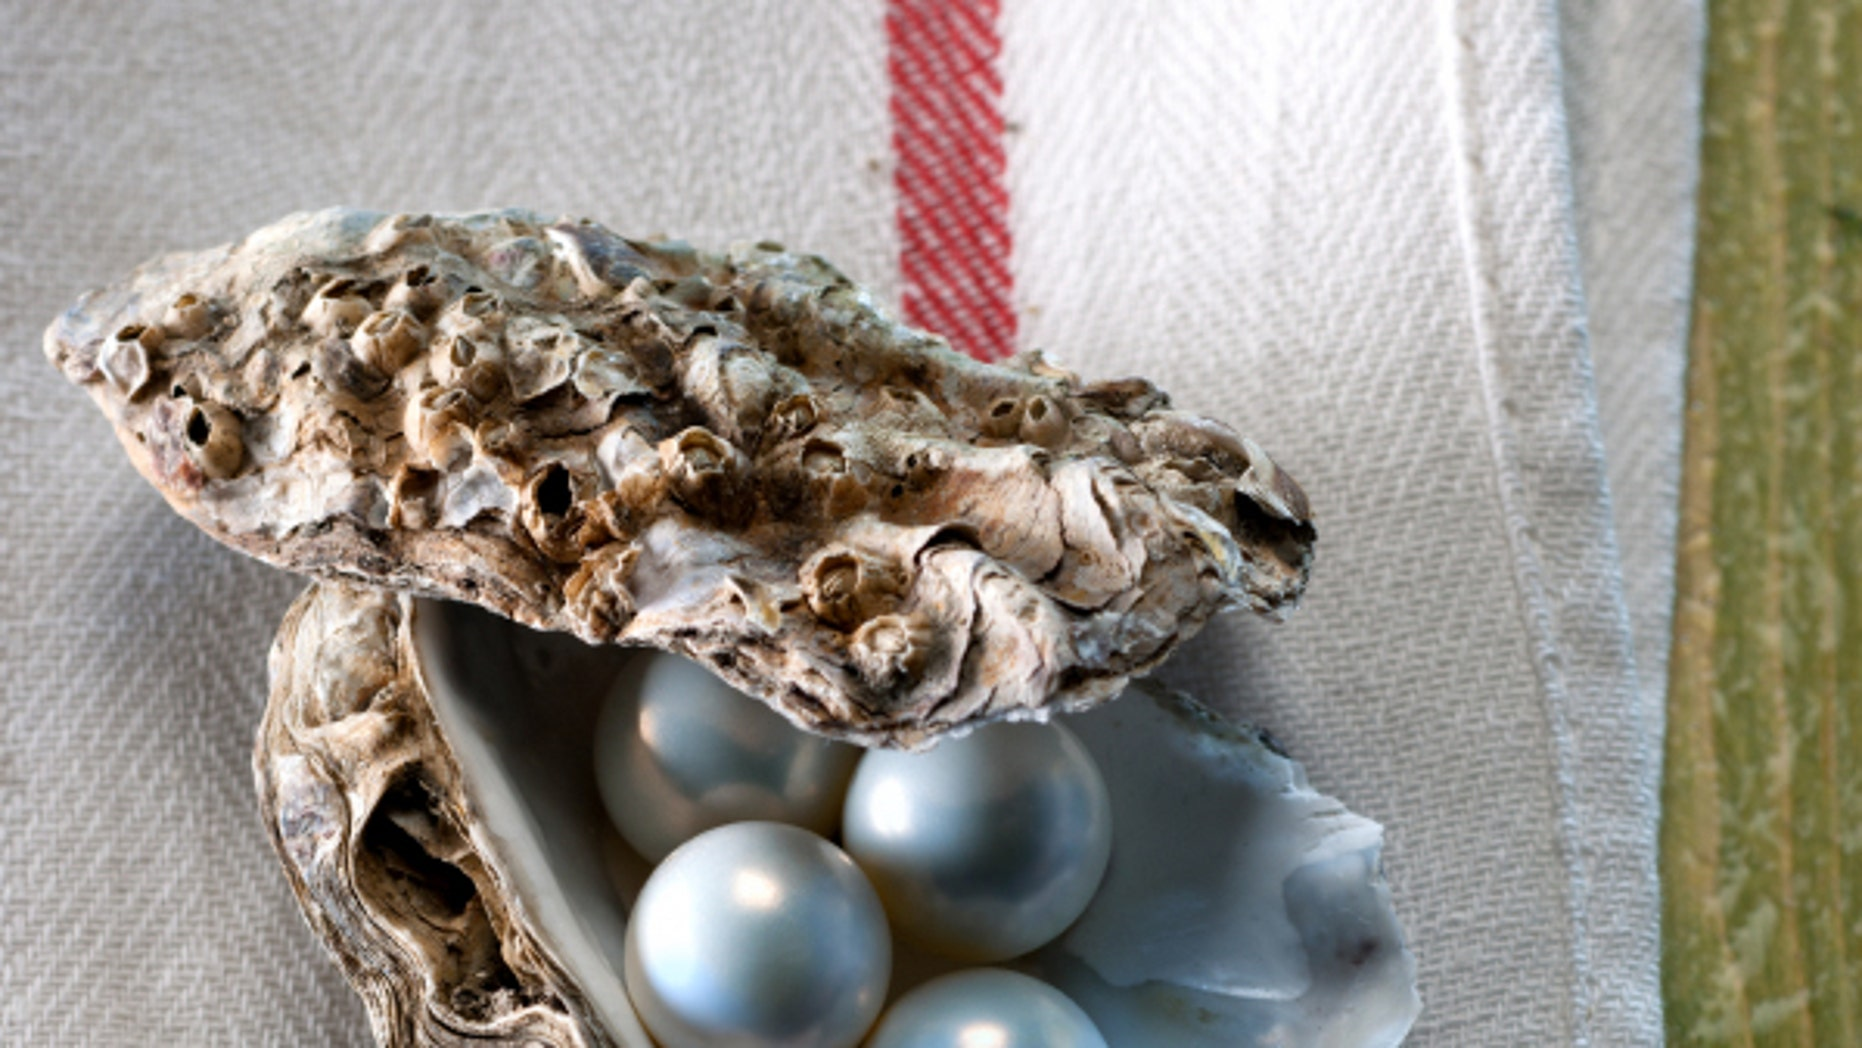 A Tennessee diner found multiple pearls in her oyster lunch.